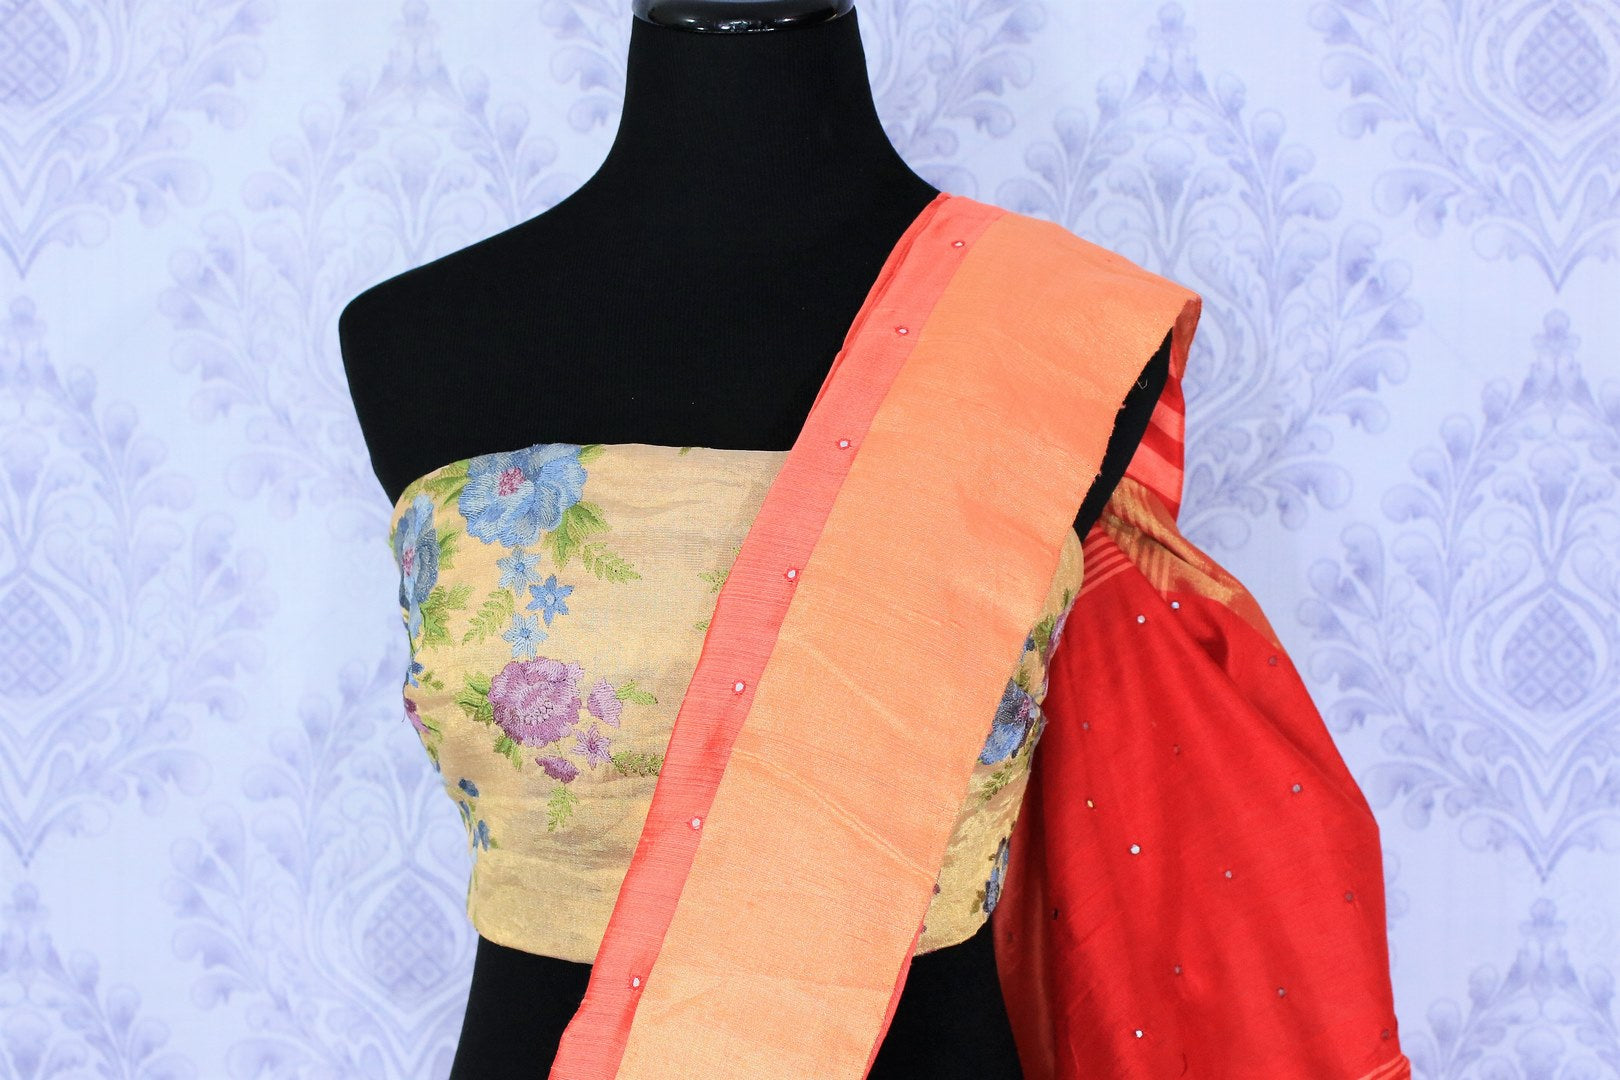 Buy orange matka silk saree with mirror work online in USA. Make your Indian look special with beautiful Indian handloom sarees available at Pure Elegance Indian clothing store in USA or shop online.-blouse pallu